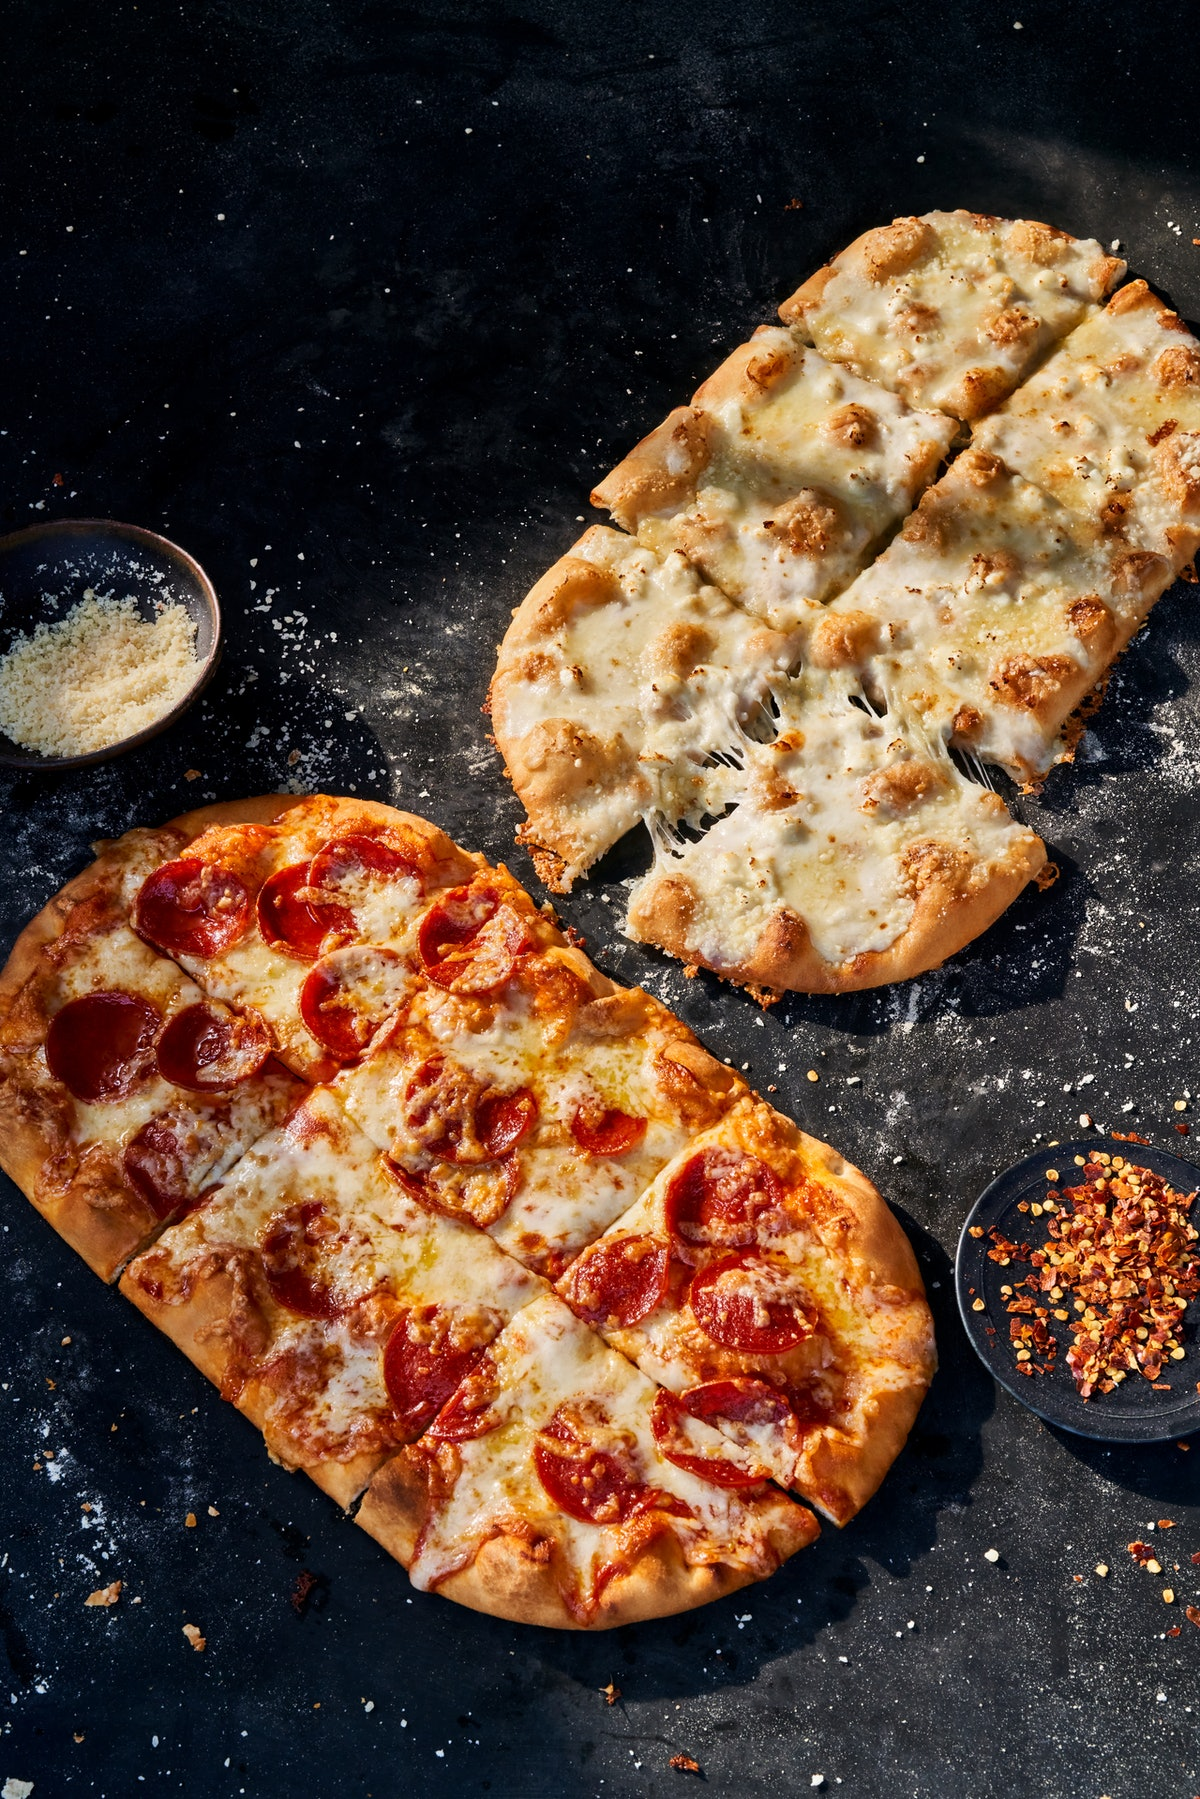 Panera's new Flatbread Pizza flavors and Family Feast deals for 2021 sound tasty.